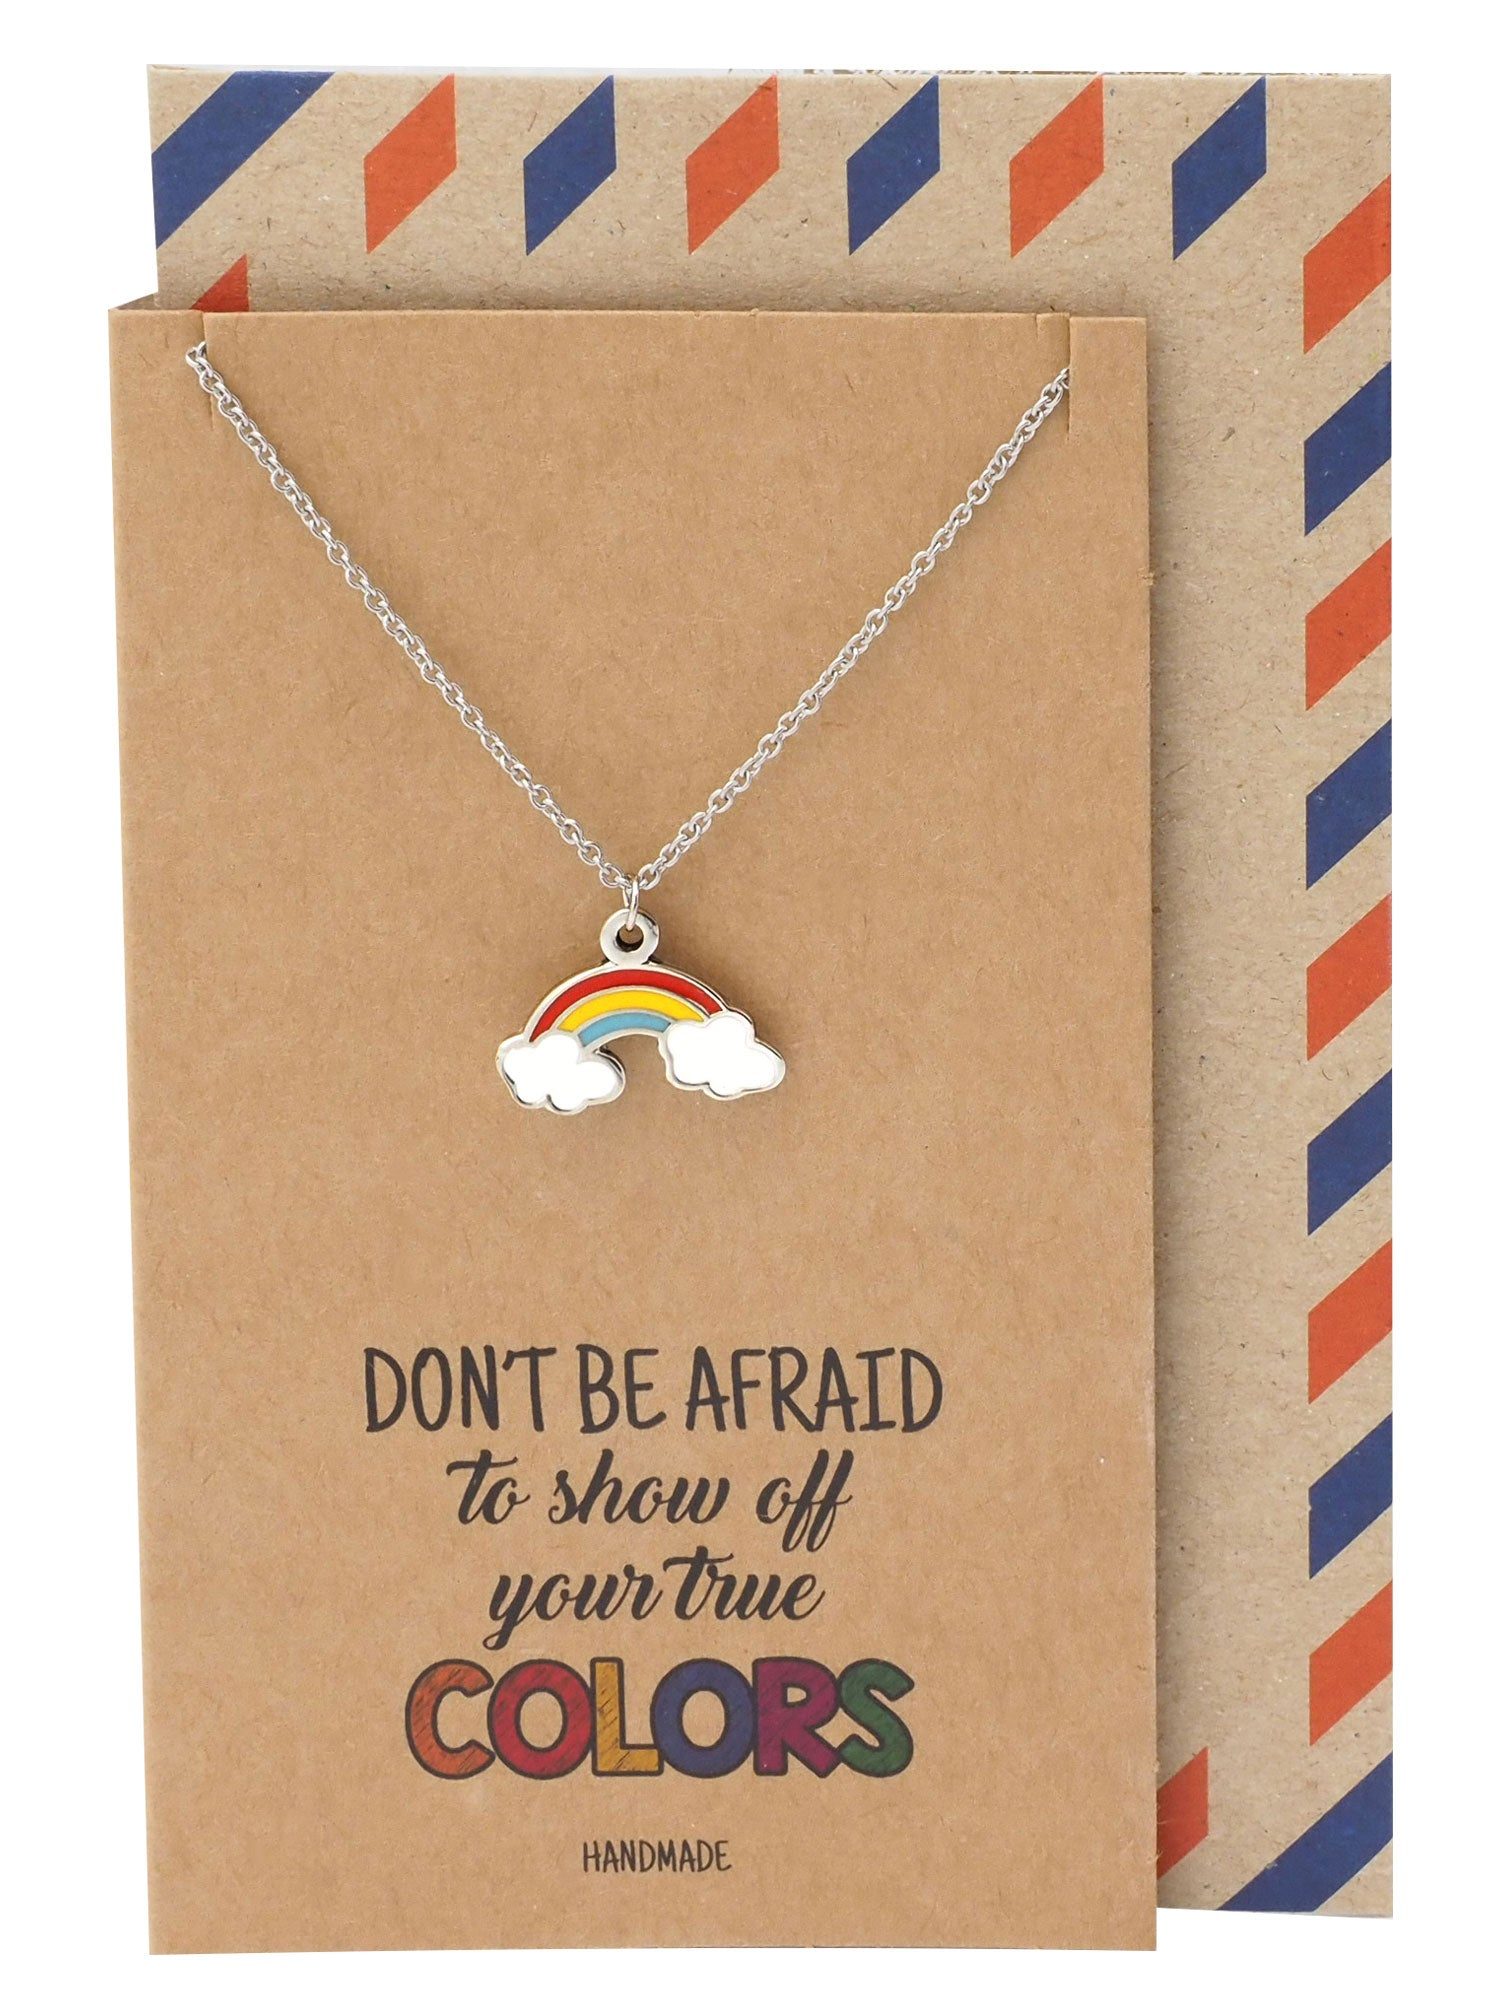 Carmela Rainbow Necklace, Christmas Gifts for Friends with Inspirational Quote on Greeting Card - Quan Jewelry